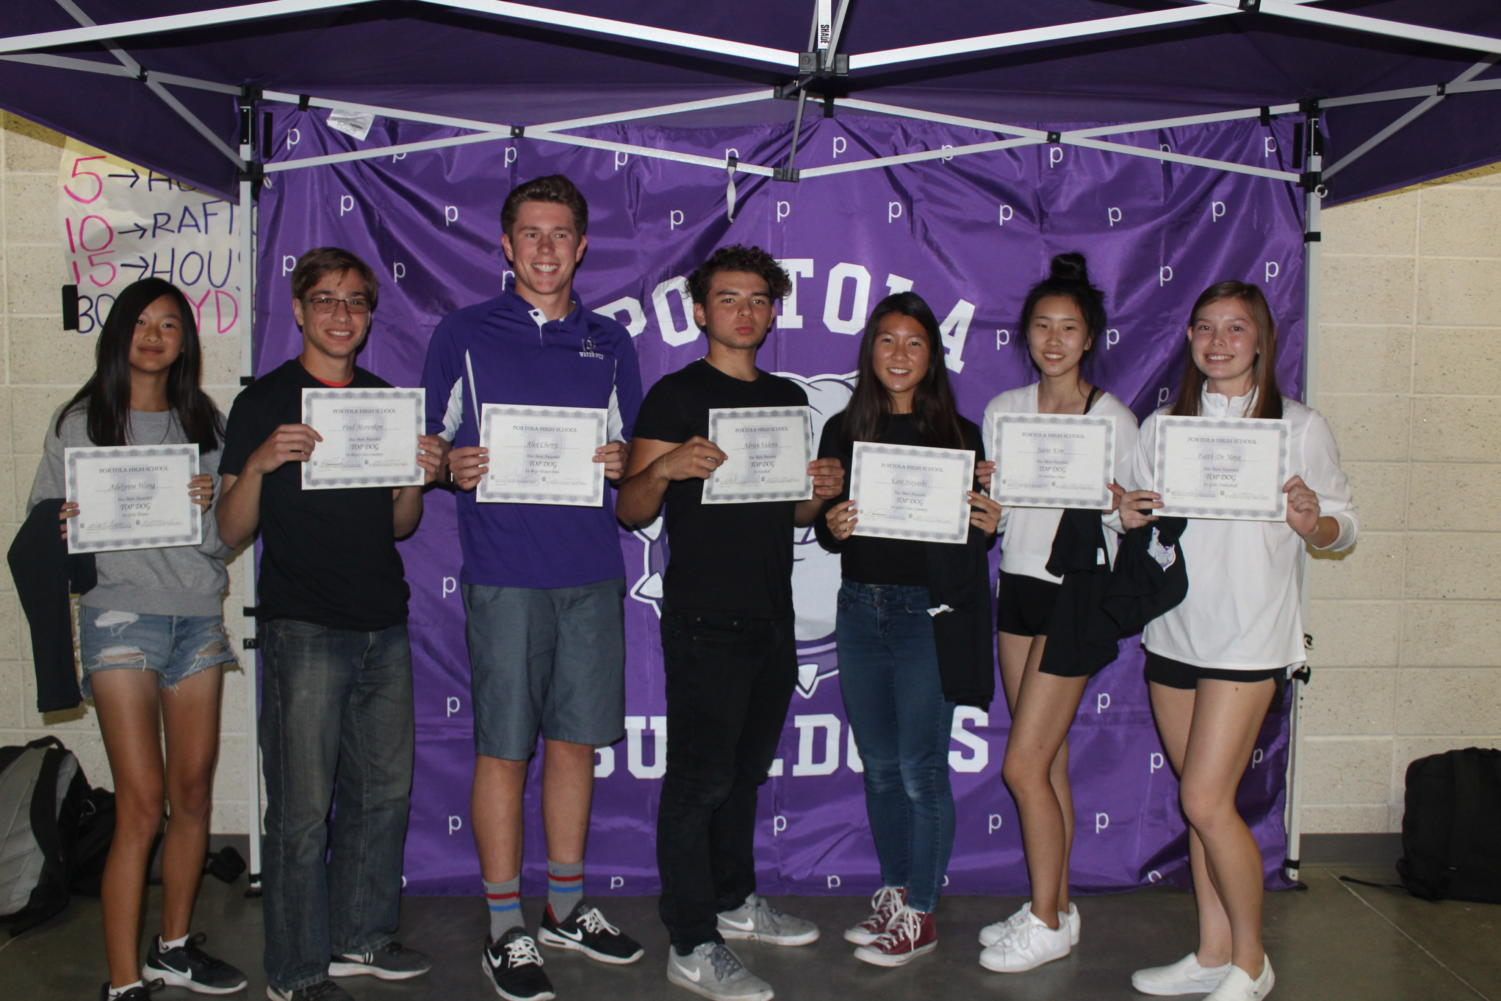 Fall Top Dog award recipients included: Adelynne Wong, Paul Morenkov, Alex Cherry, Adrian Valerin, Kate Hayashi, Jaein Kim and Faith DeNeve. Although she won an award, sophomore Kenzie Edson is not pictured.